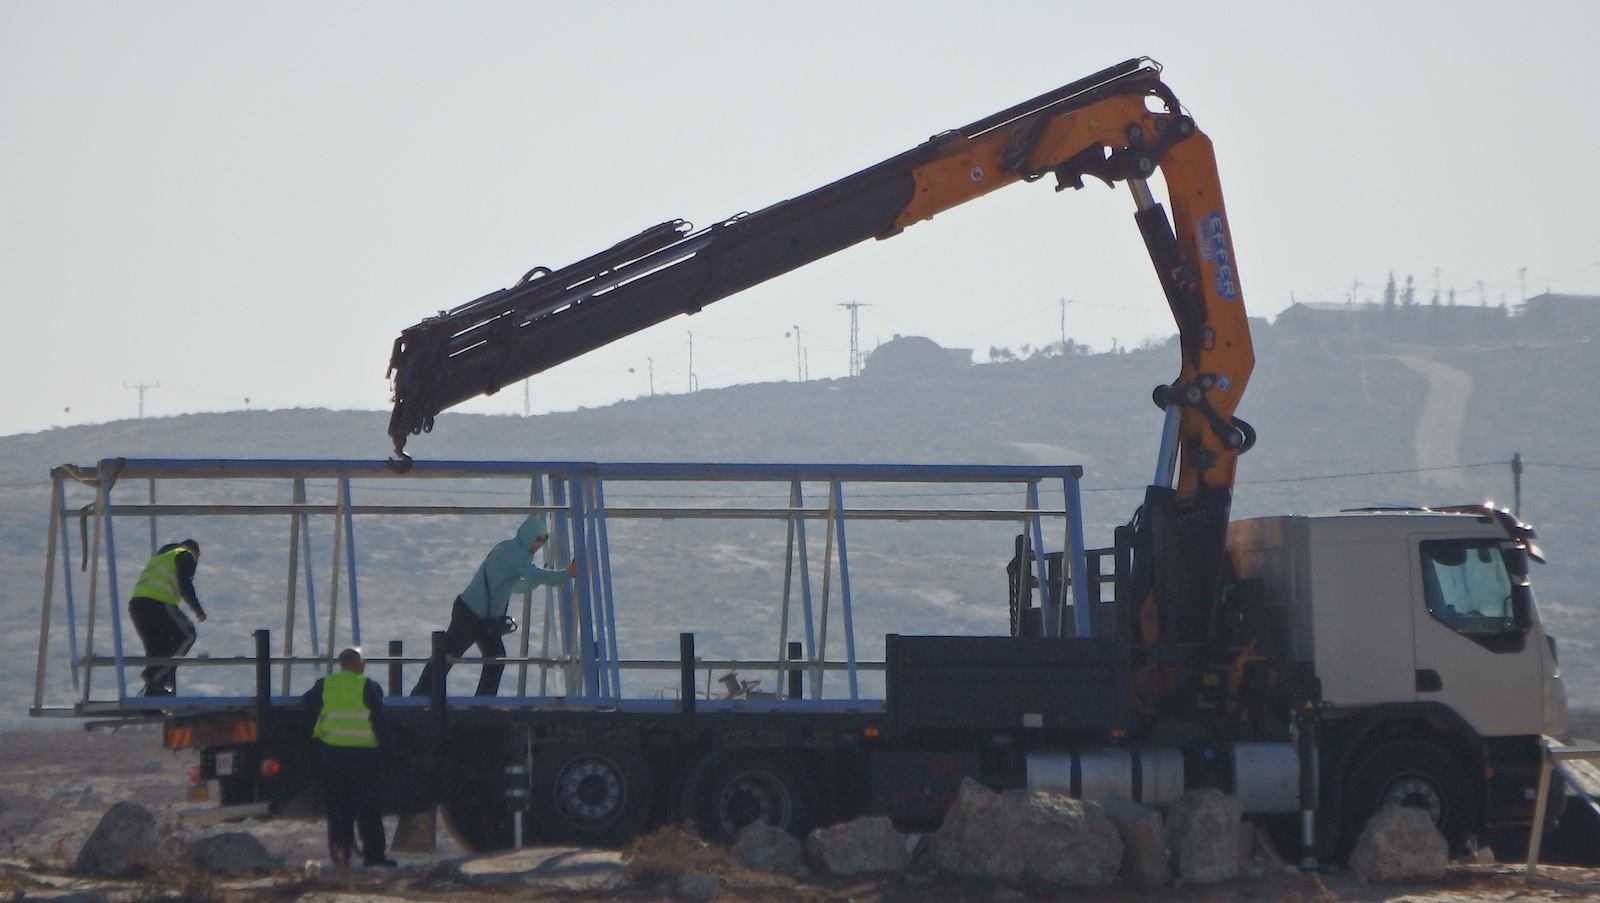 Israeli forces seize Palestinian solar panel system, in the background Mitzpe Yair Israeli illegal outpost